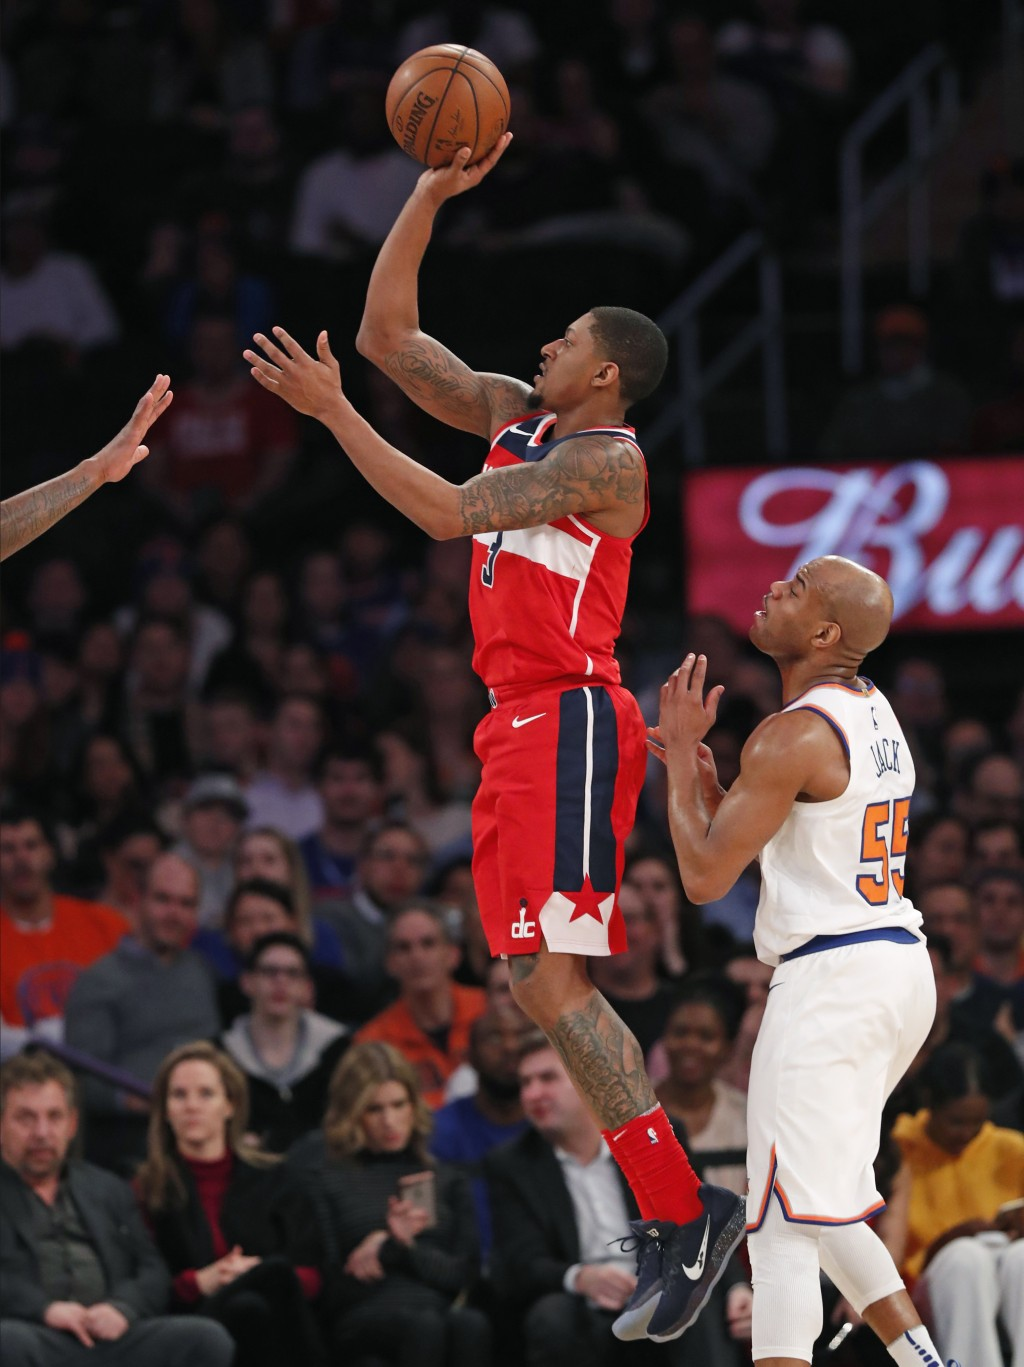 Washington Wizards guard Bradley Beal (3) shoots as New York Knicks guard Jarrett Jack (55) in the second half of an NBA basketball game in New York,